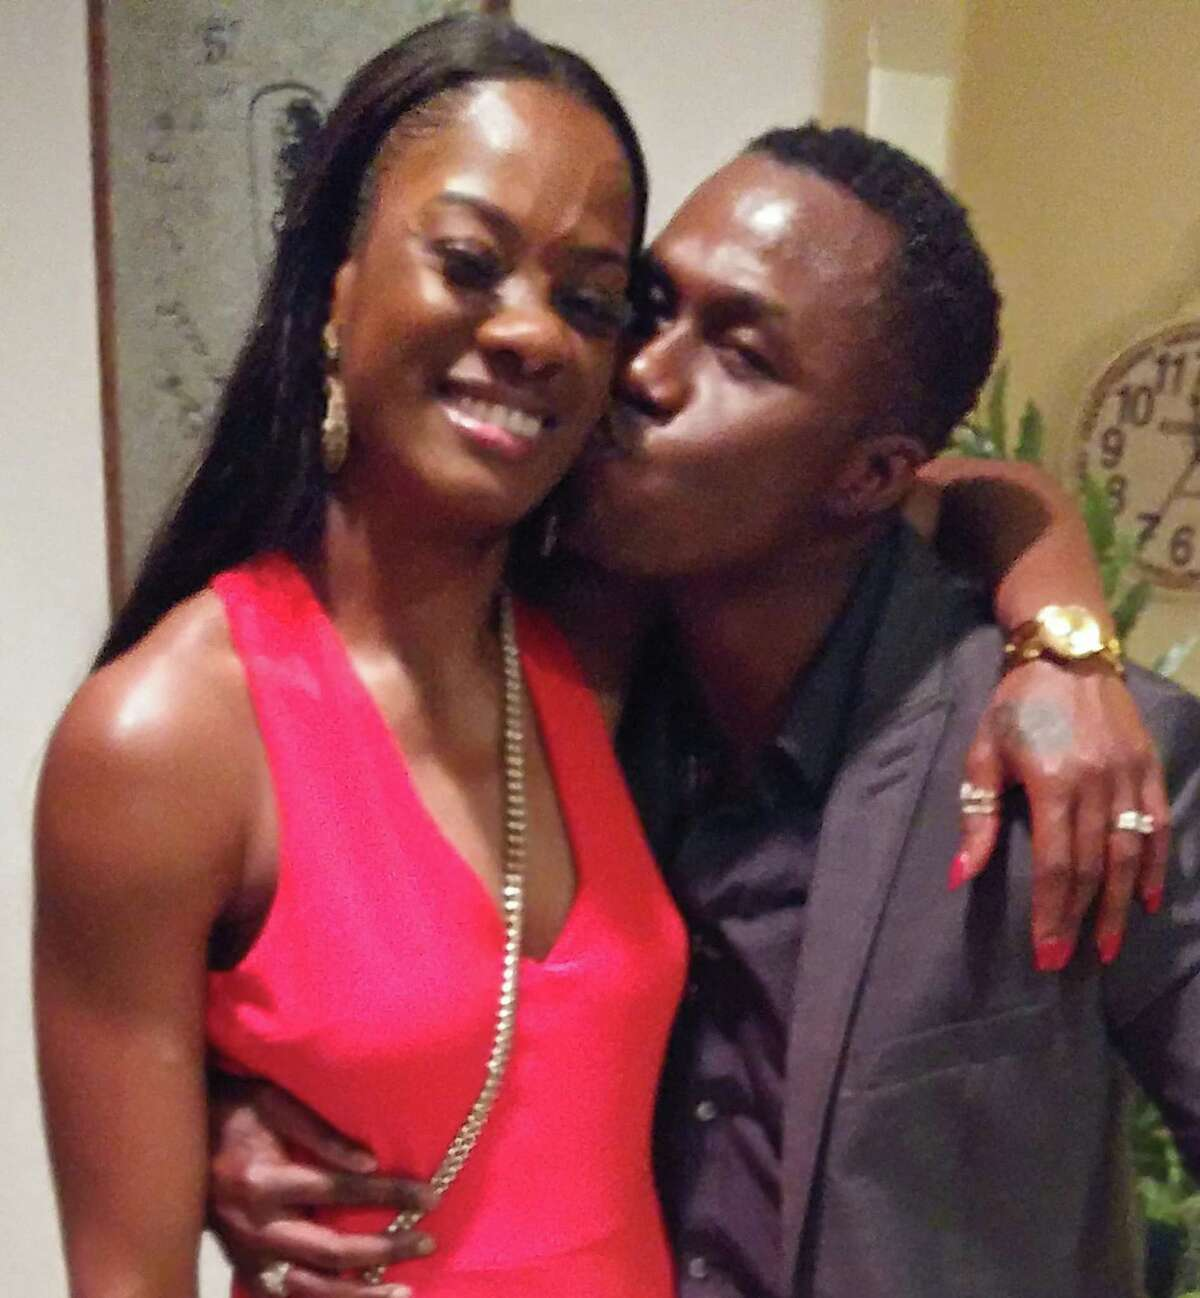 Andre McDonald kisses wife Andreen McDonald during his 40th birthday party in February. Andreen McDonaldl disappeared March 1 and is presumed dead by law enforcement officials.